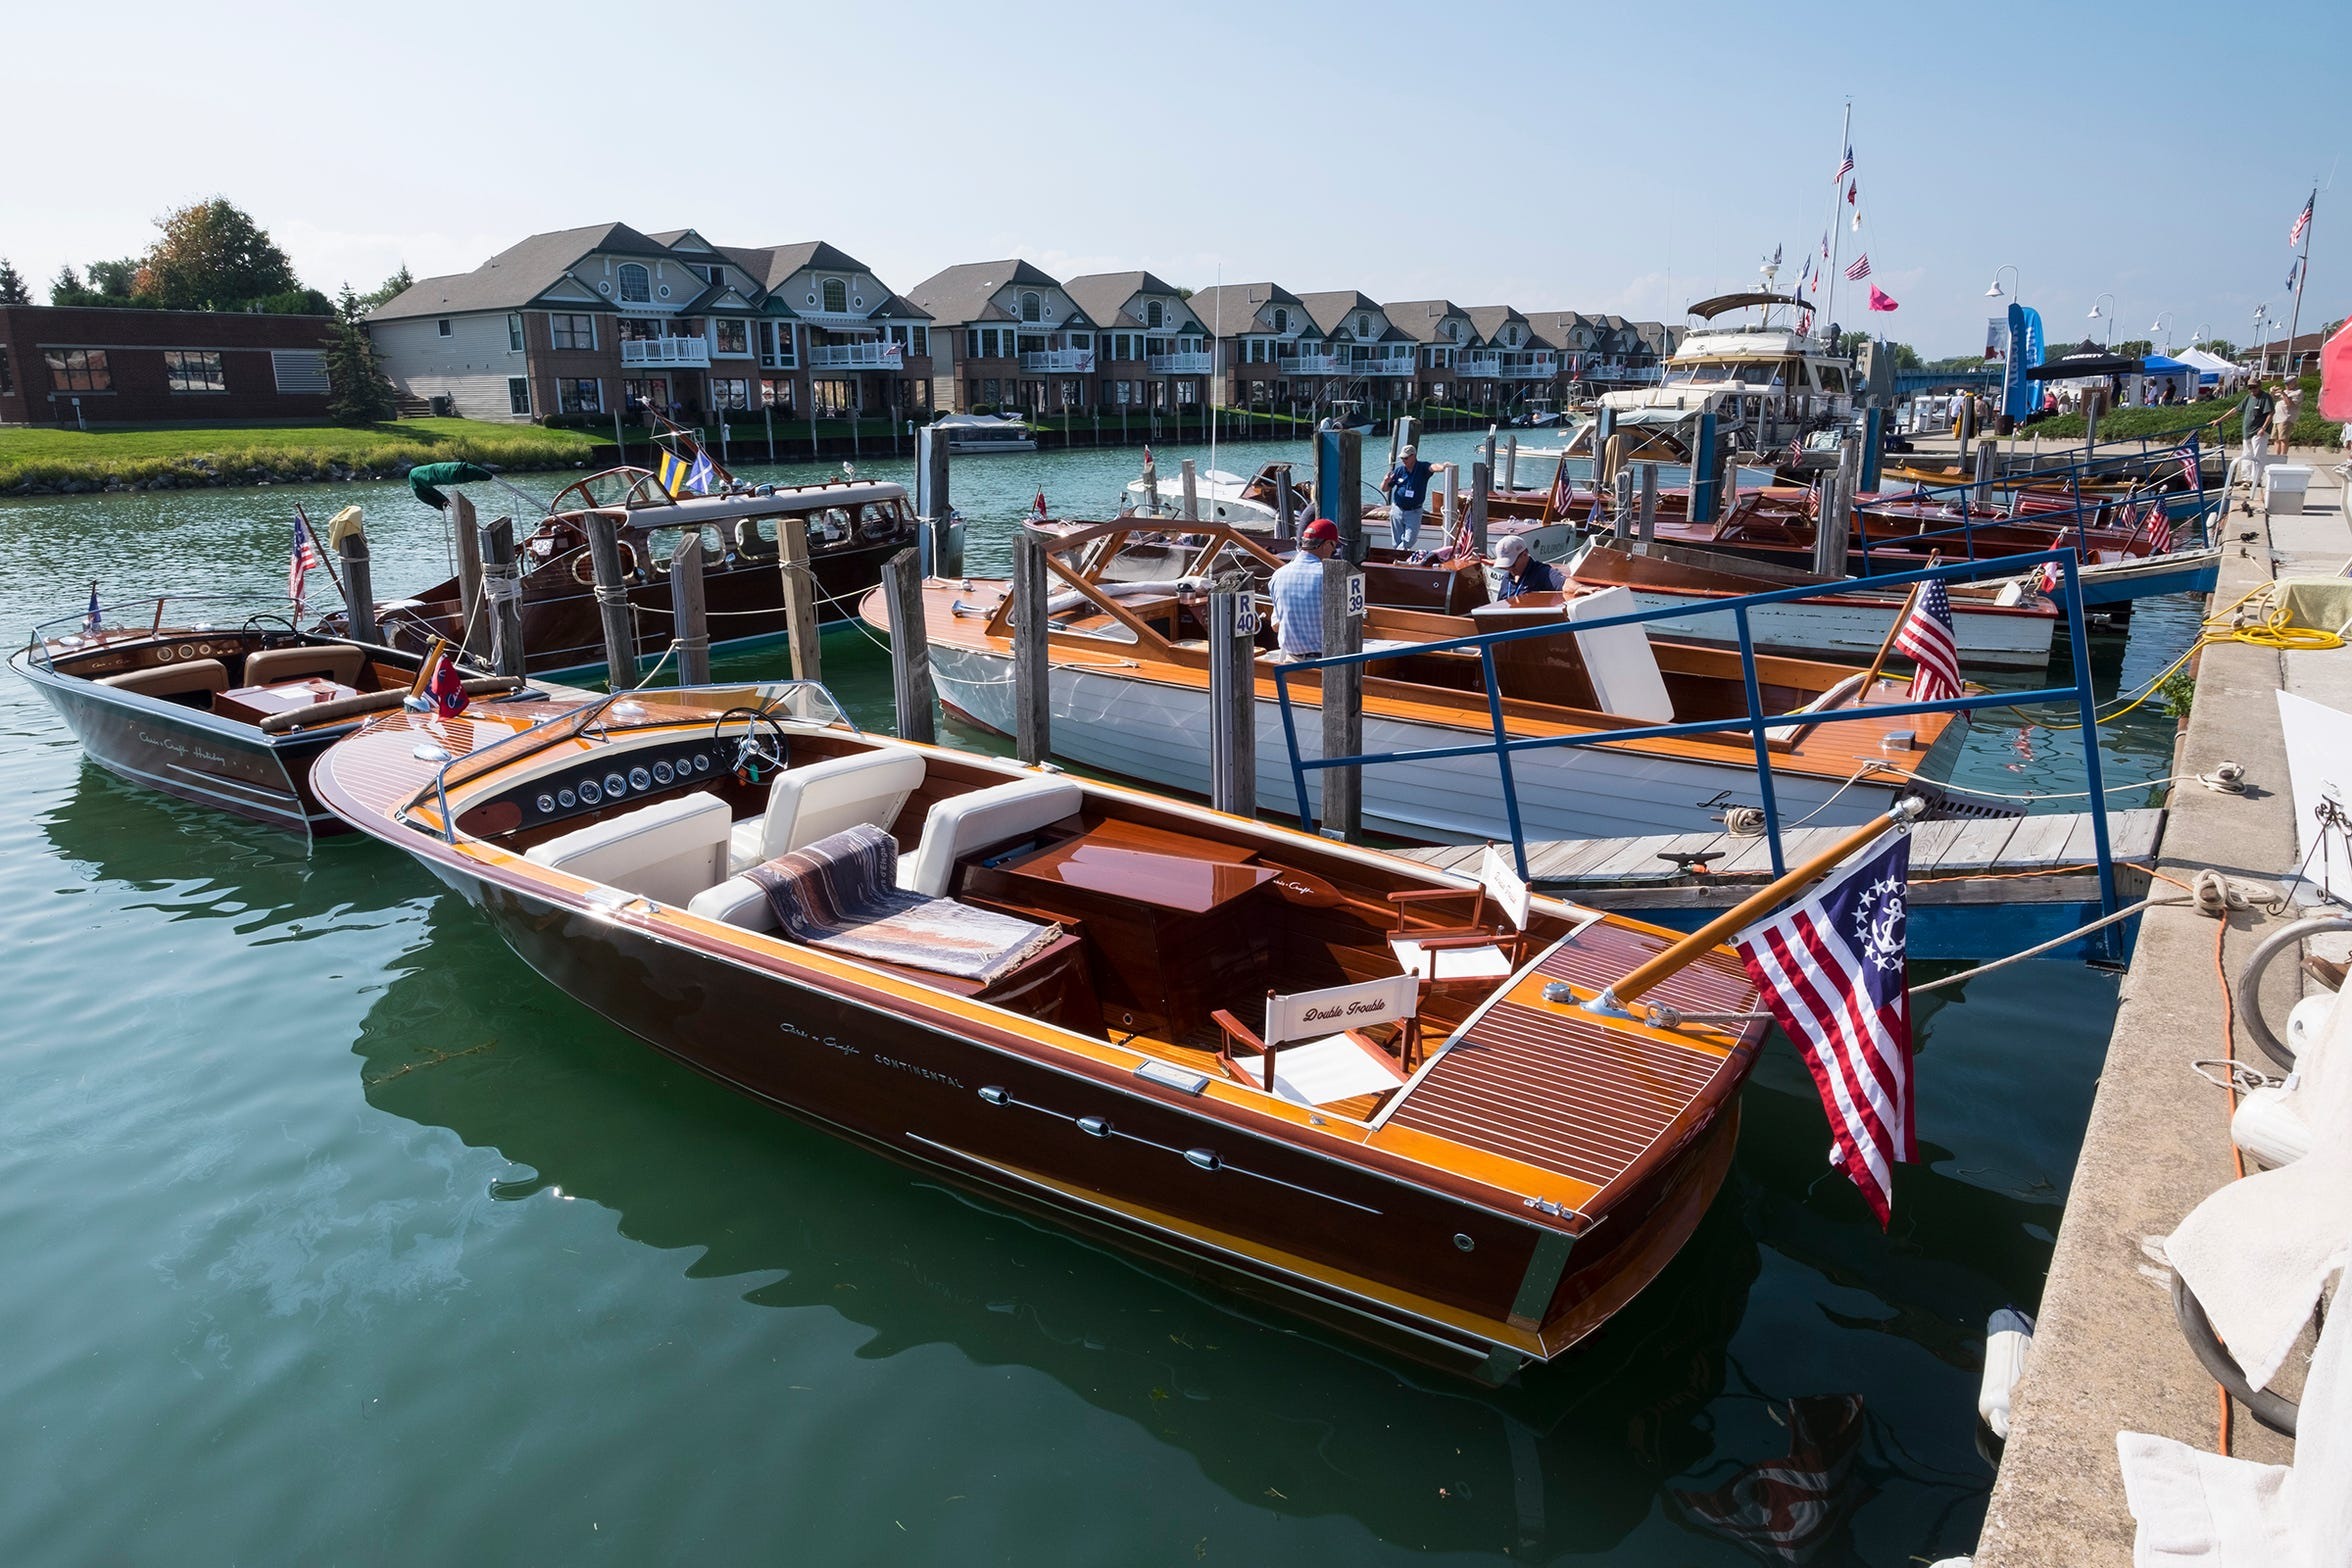 Boats tied in slips line River Street Marina Friday, Sept. 14, 2018, during the ACBS International Boat Show.